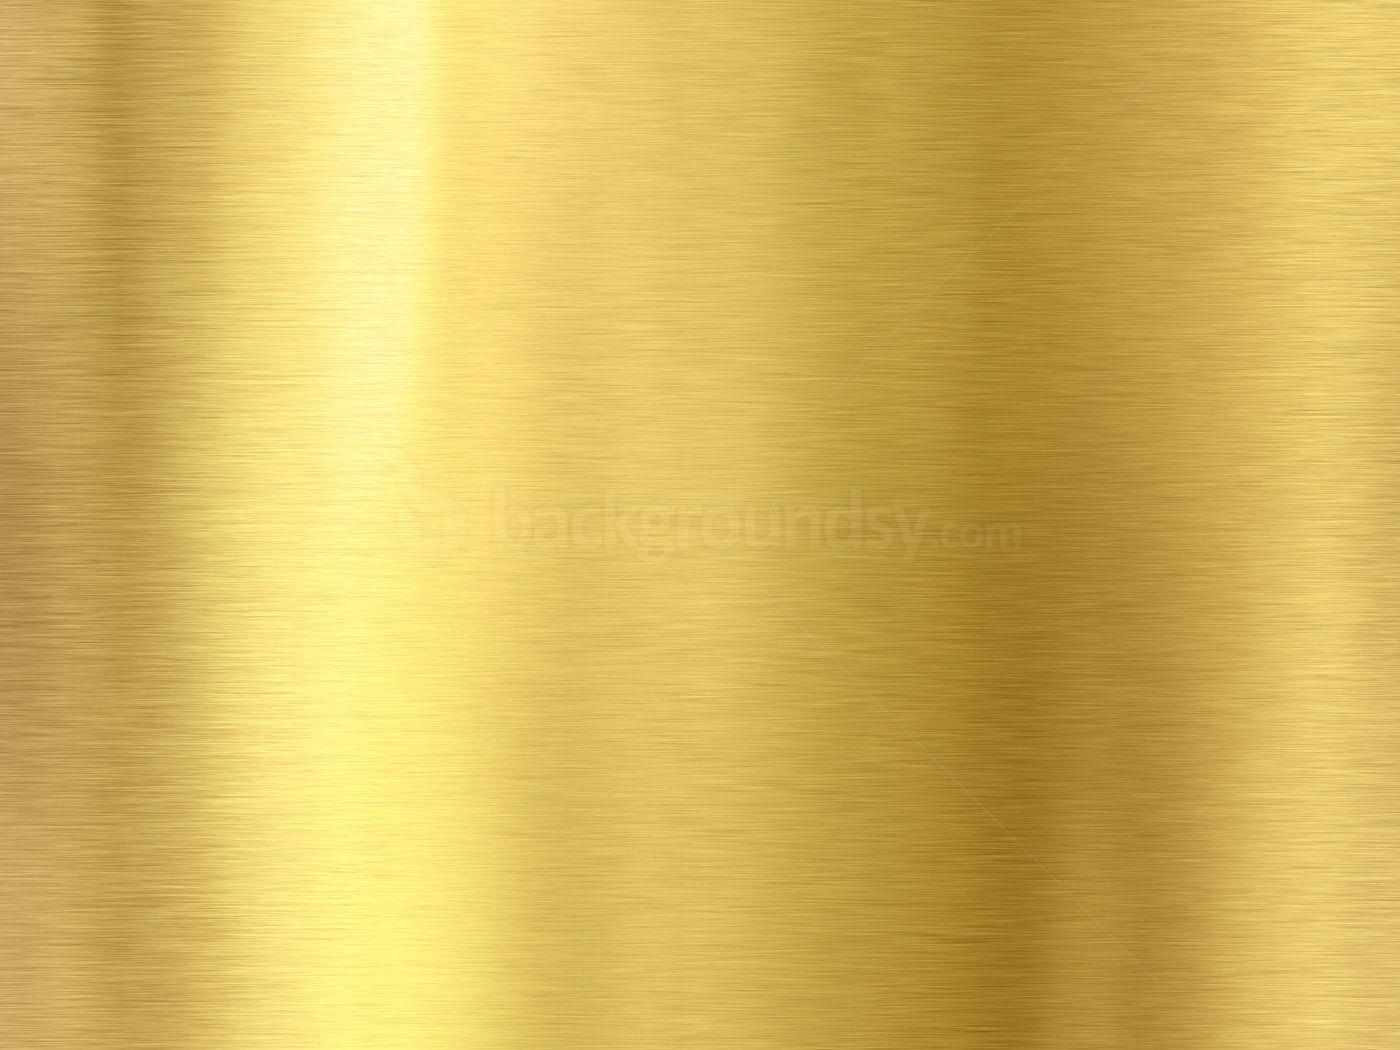 Gold color wallpapers wallpaper cave for Gold wallpaper for home